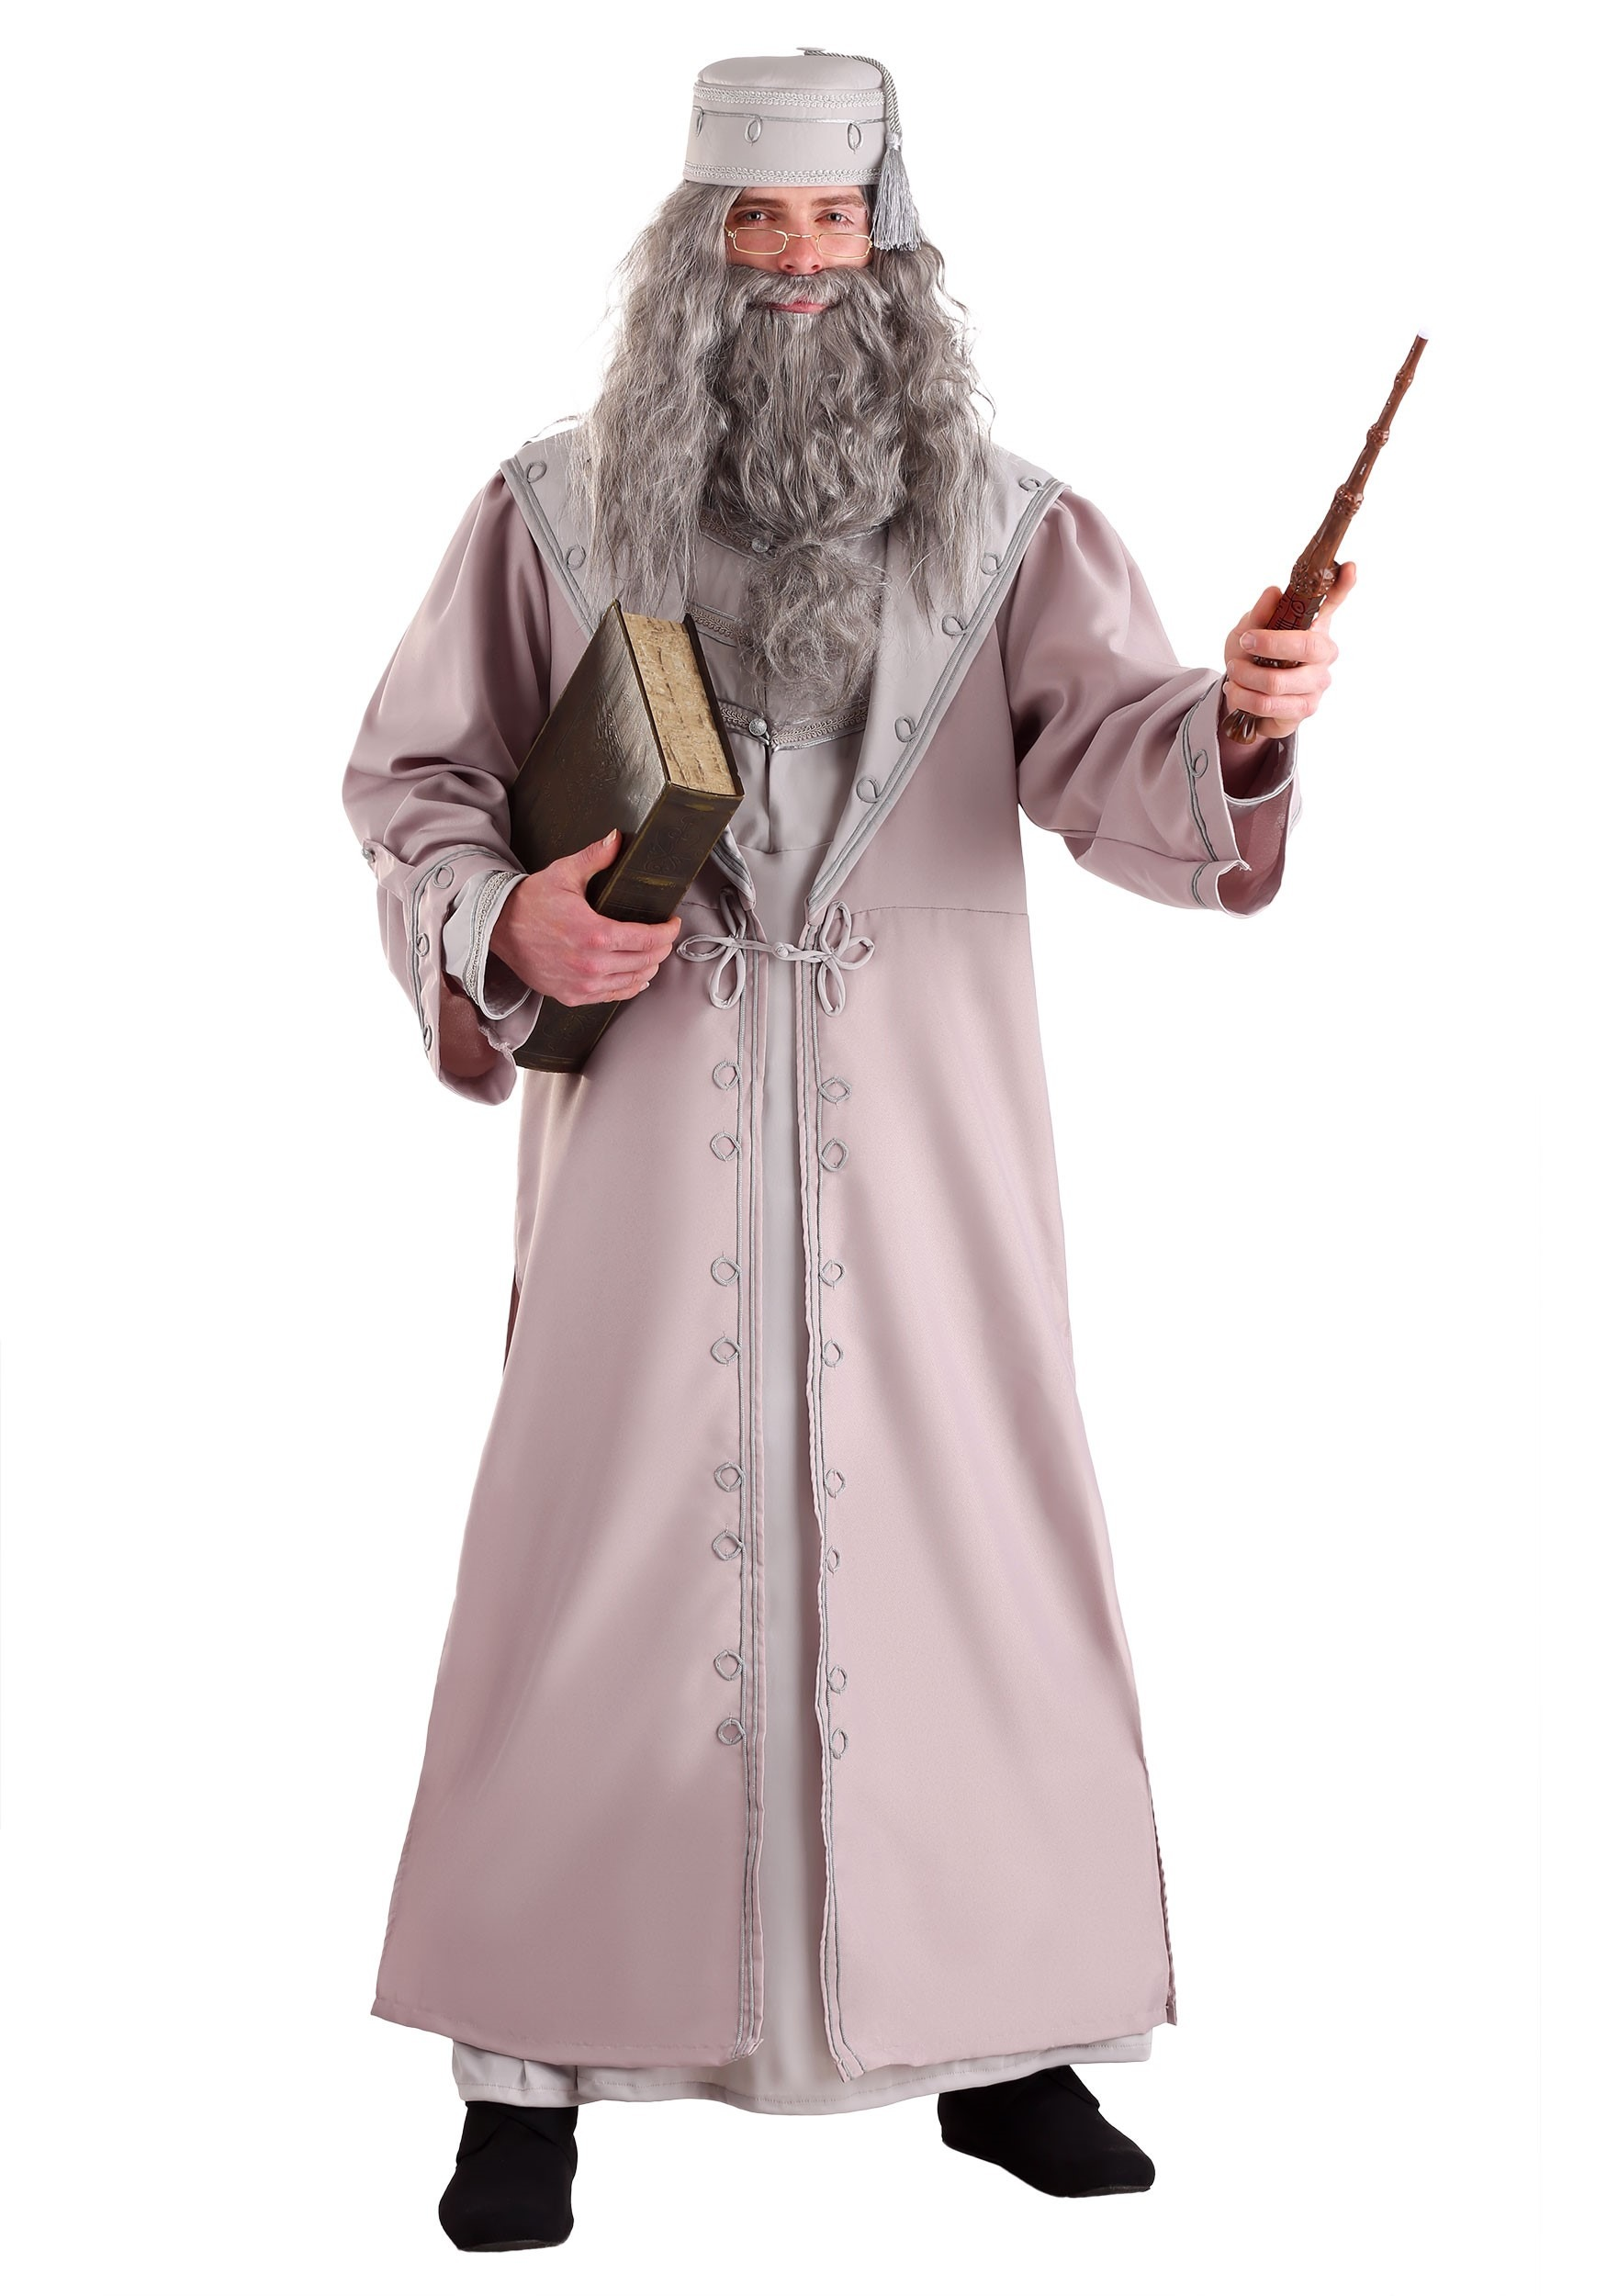 Adult deluxe plus size dumbledore costume 2x 3x adult deluxe plus size dumbledore costume solutioingenieria Gallery